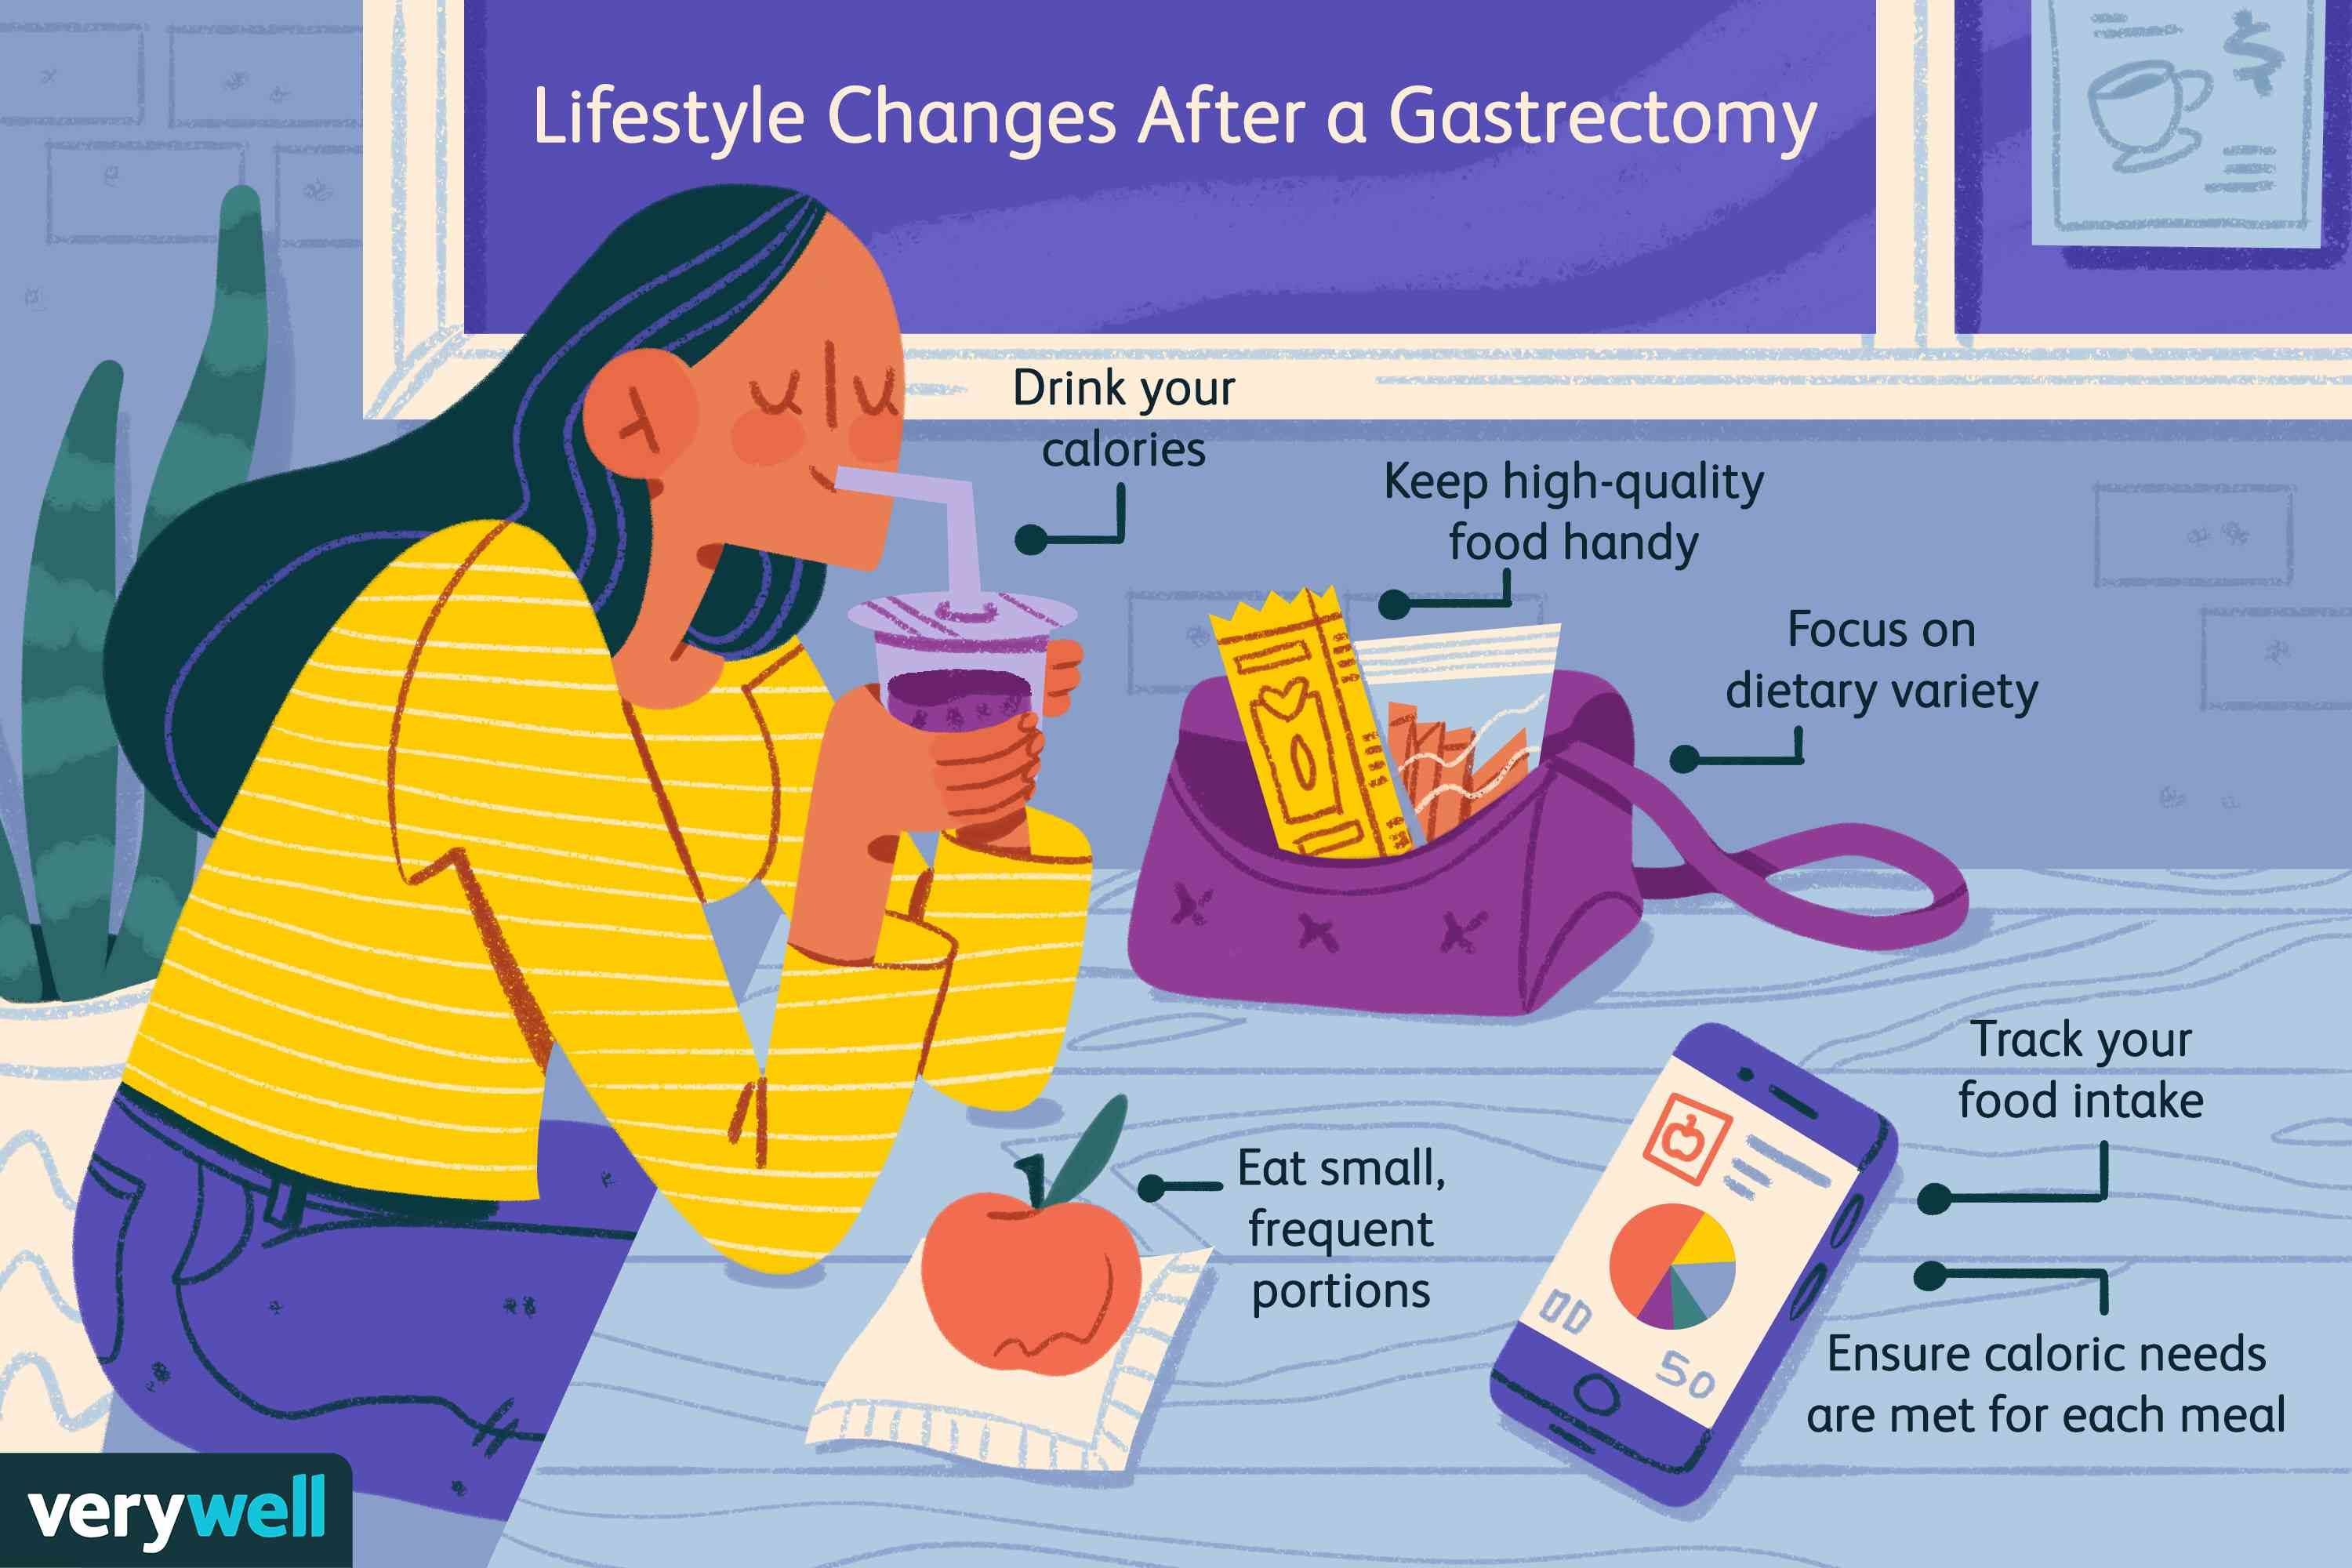 Lifestyle Changes After a Gastrectomy